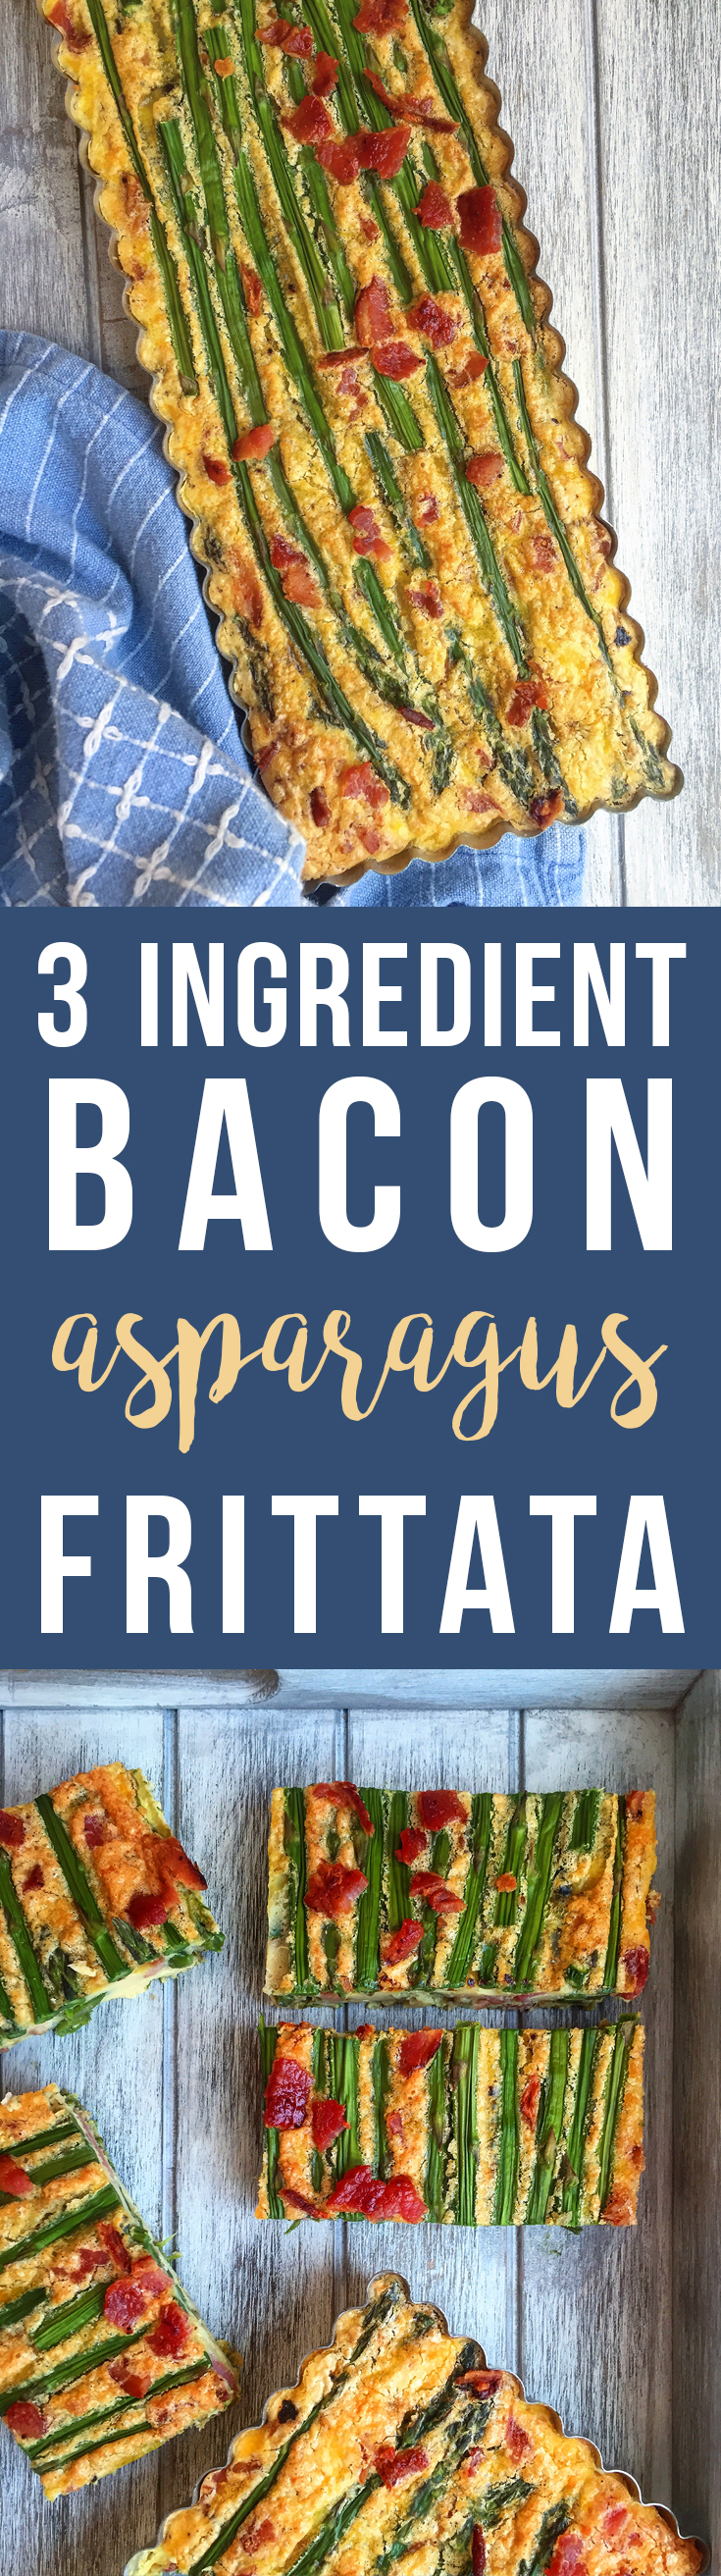 3 Ingredient Bacon Asparagus Frittata - perfect for both lazy weekends or brisk weekday mornings! GrokGrub.com